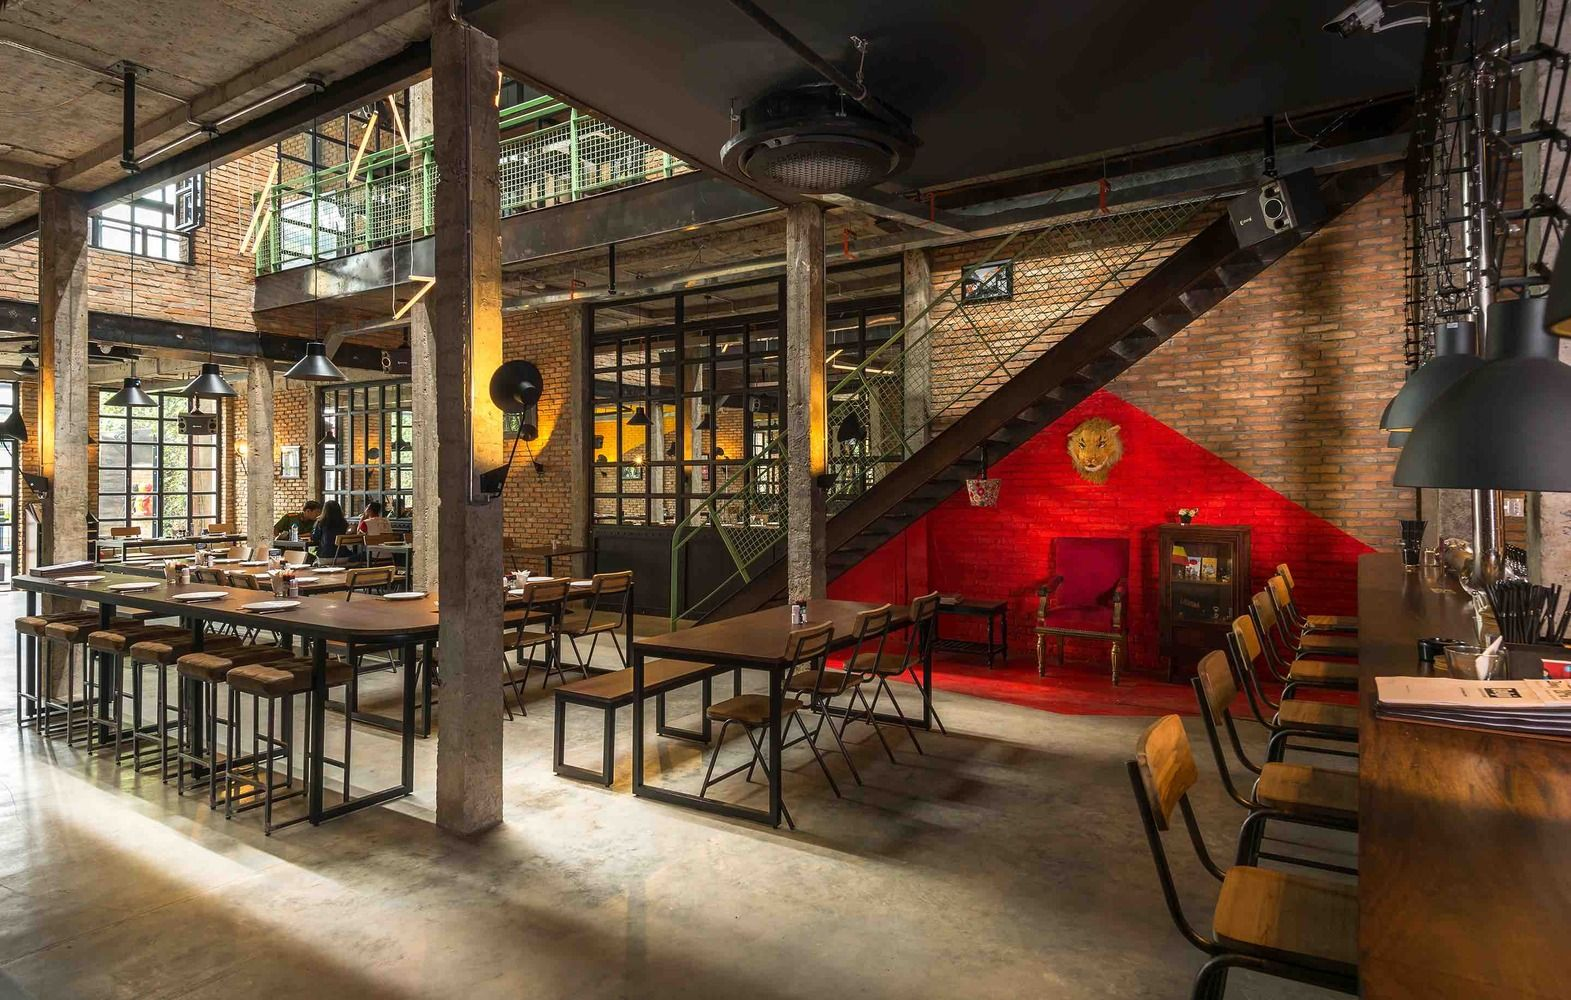 Gallery Of Industrial Brewery Pub In Saigon T3 Architects 19 Brewery Pub Architecture